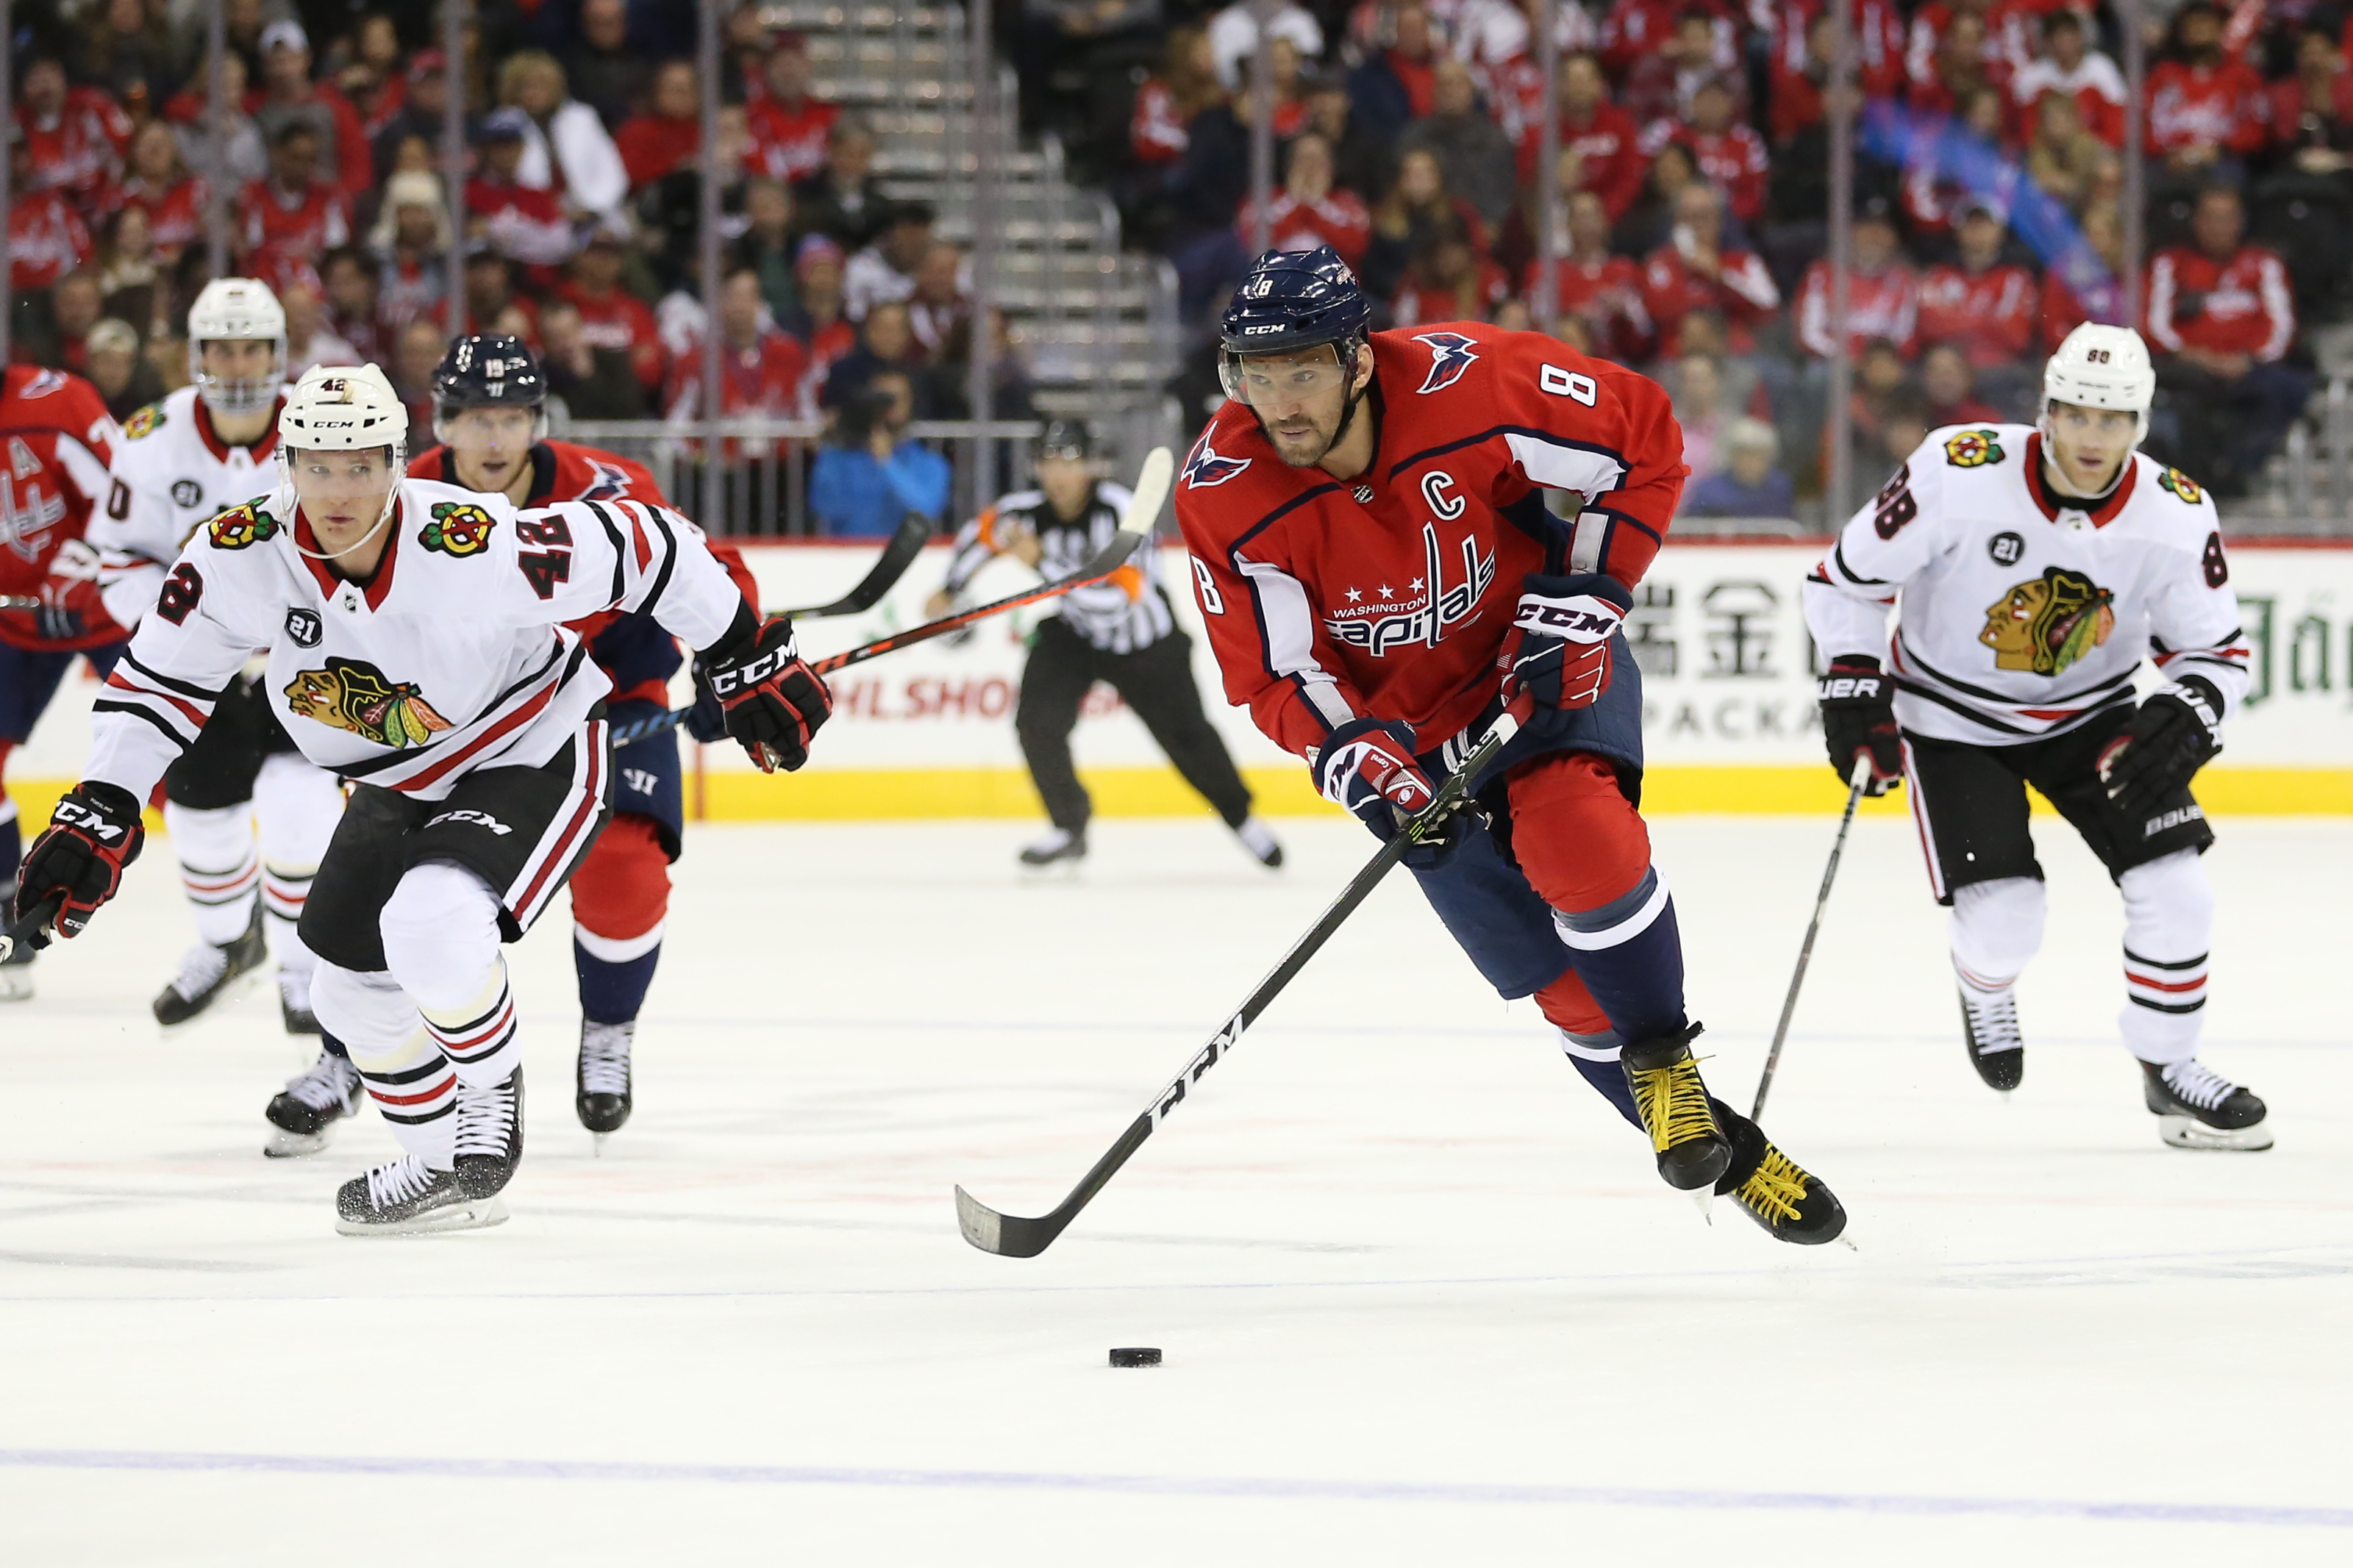 Capitals fall to Blackhawks in NHL 20 simulation